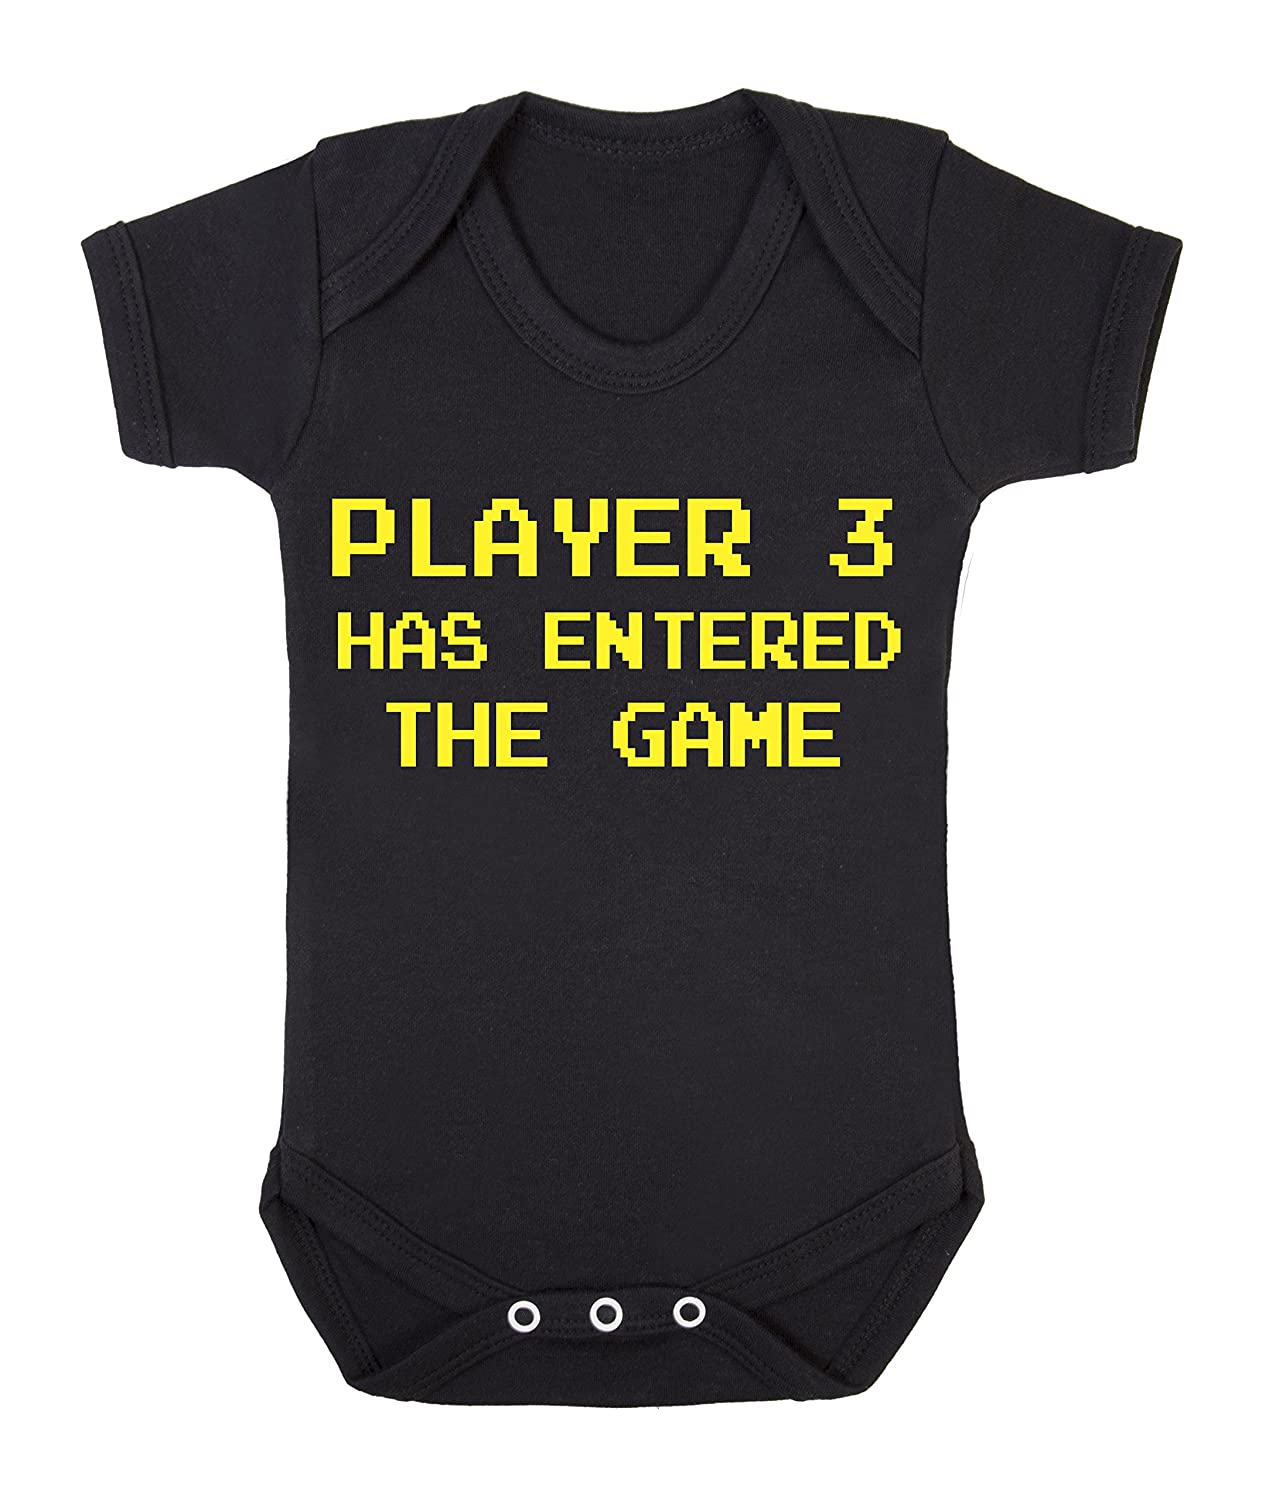 87aaf5c9fa9 Player 3 has entered the game funny babygrow onesie (0-3 months)